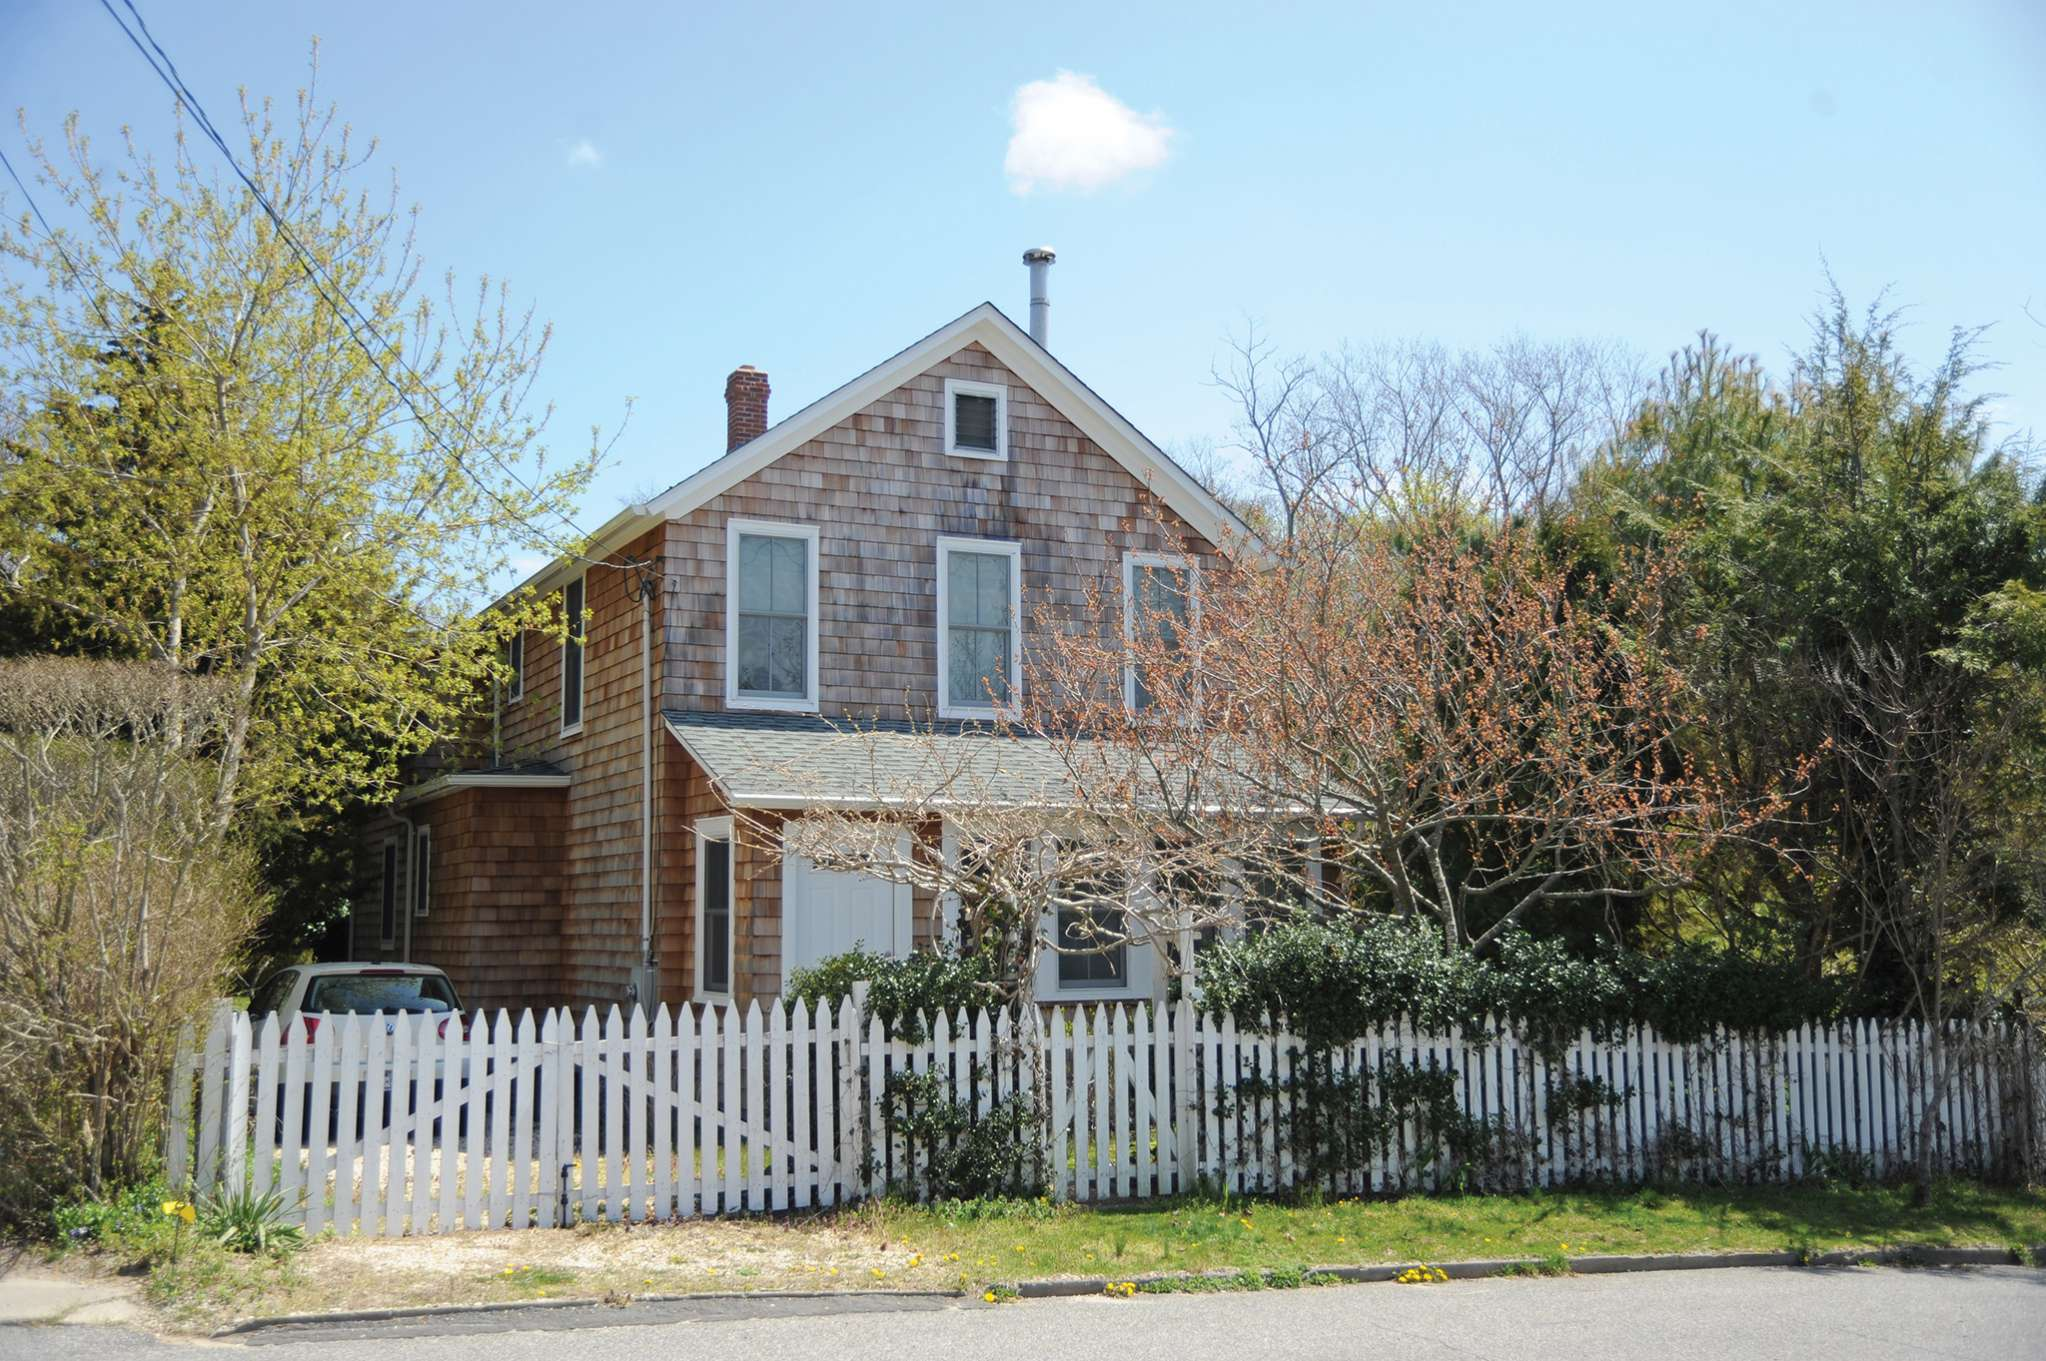 Single Family Home for Rent at Quintessential Sag Harbor 33 Oakland Avenue, Sag Harbor, New York